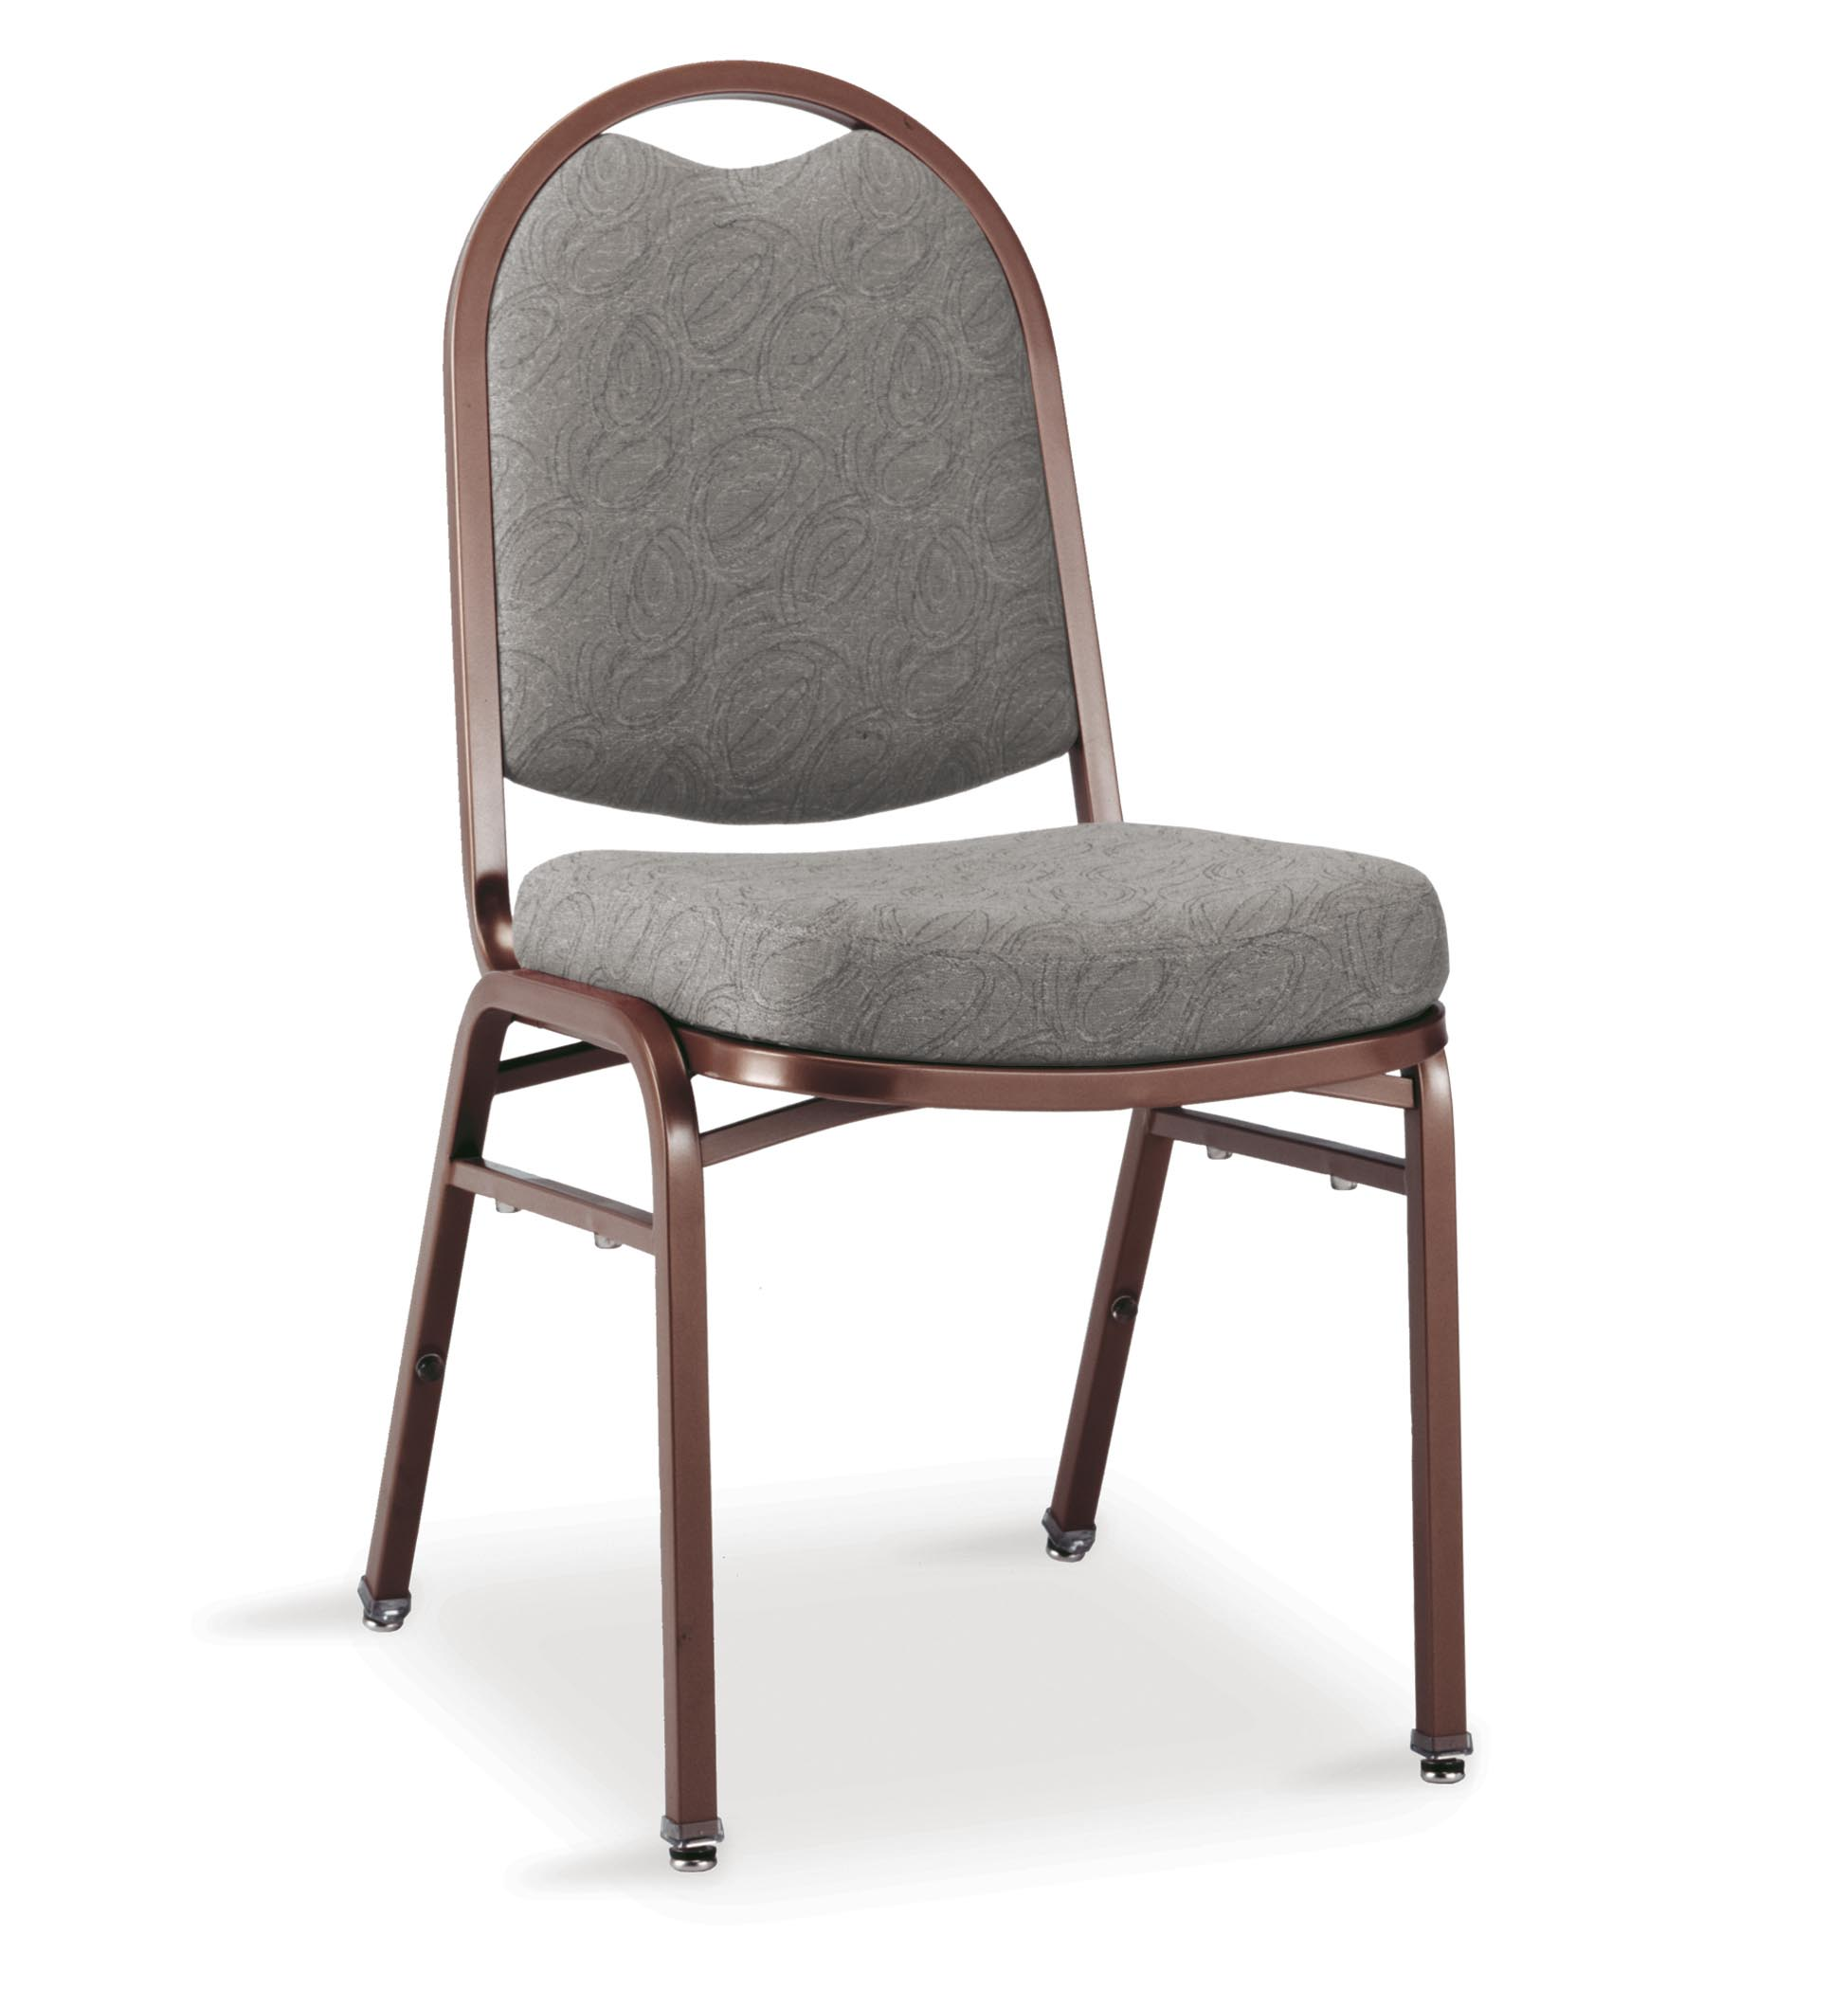 5231P Steel Banquet Chair